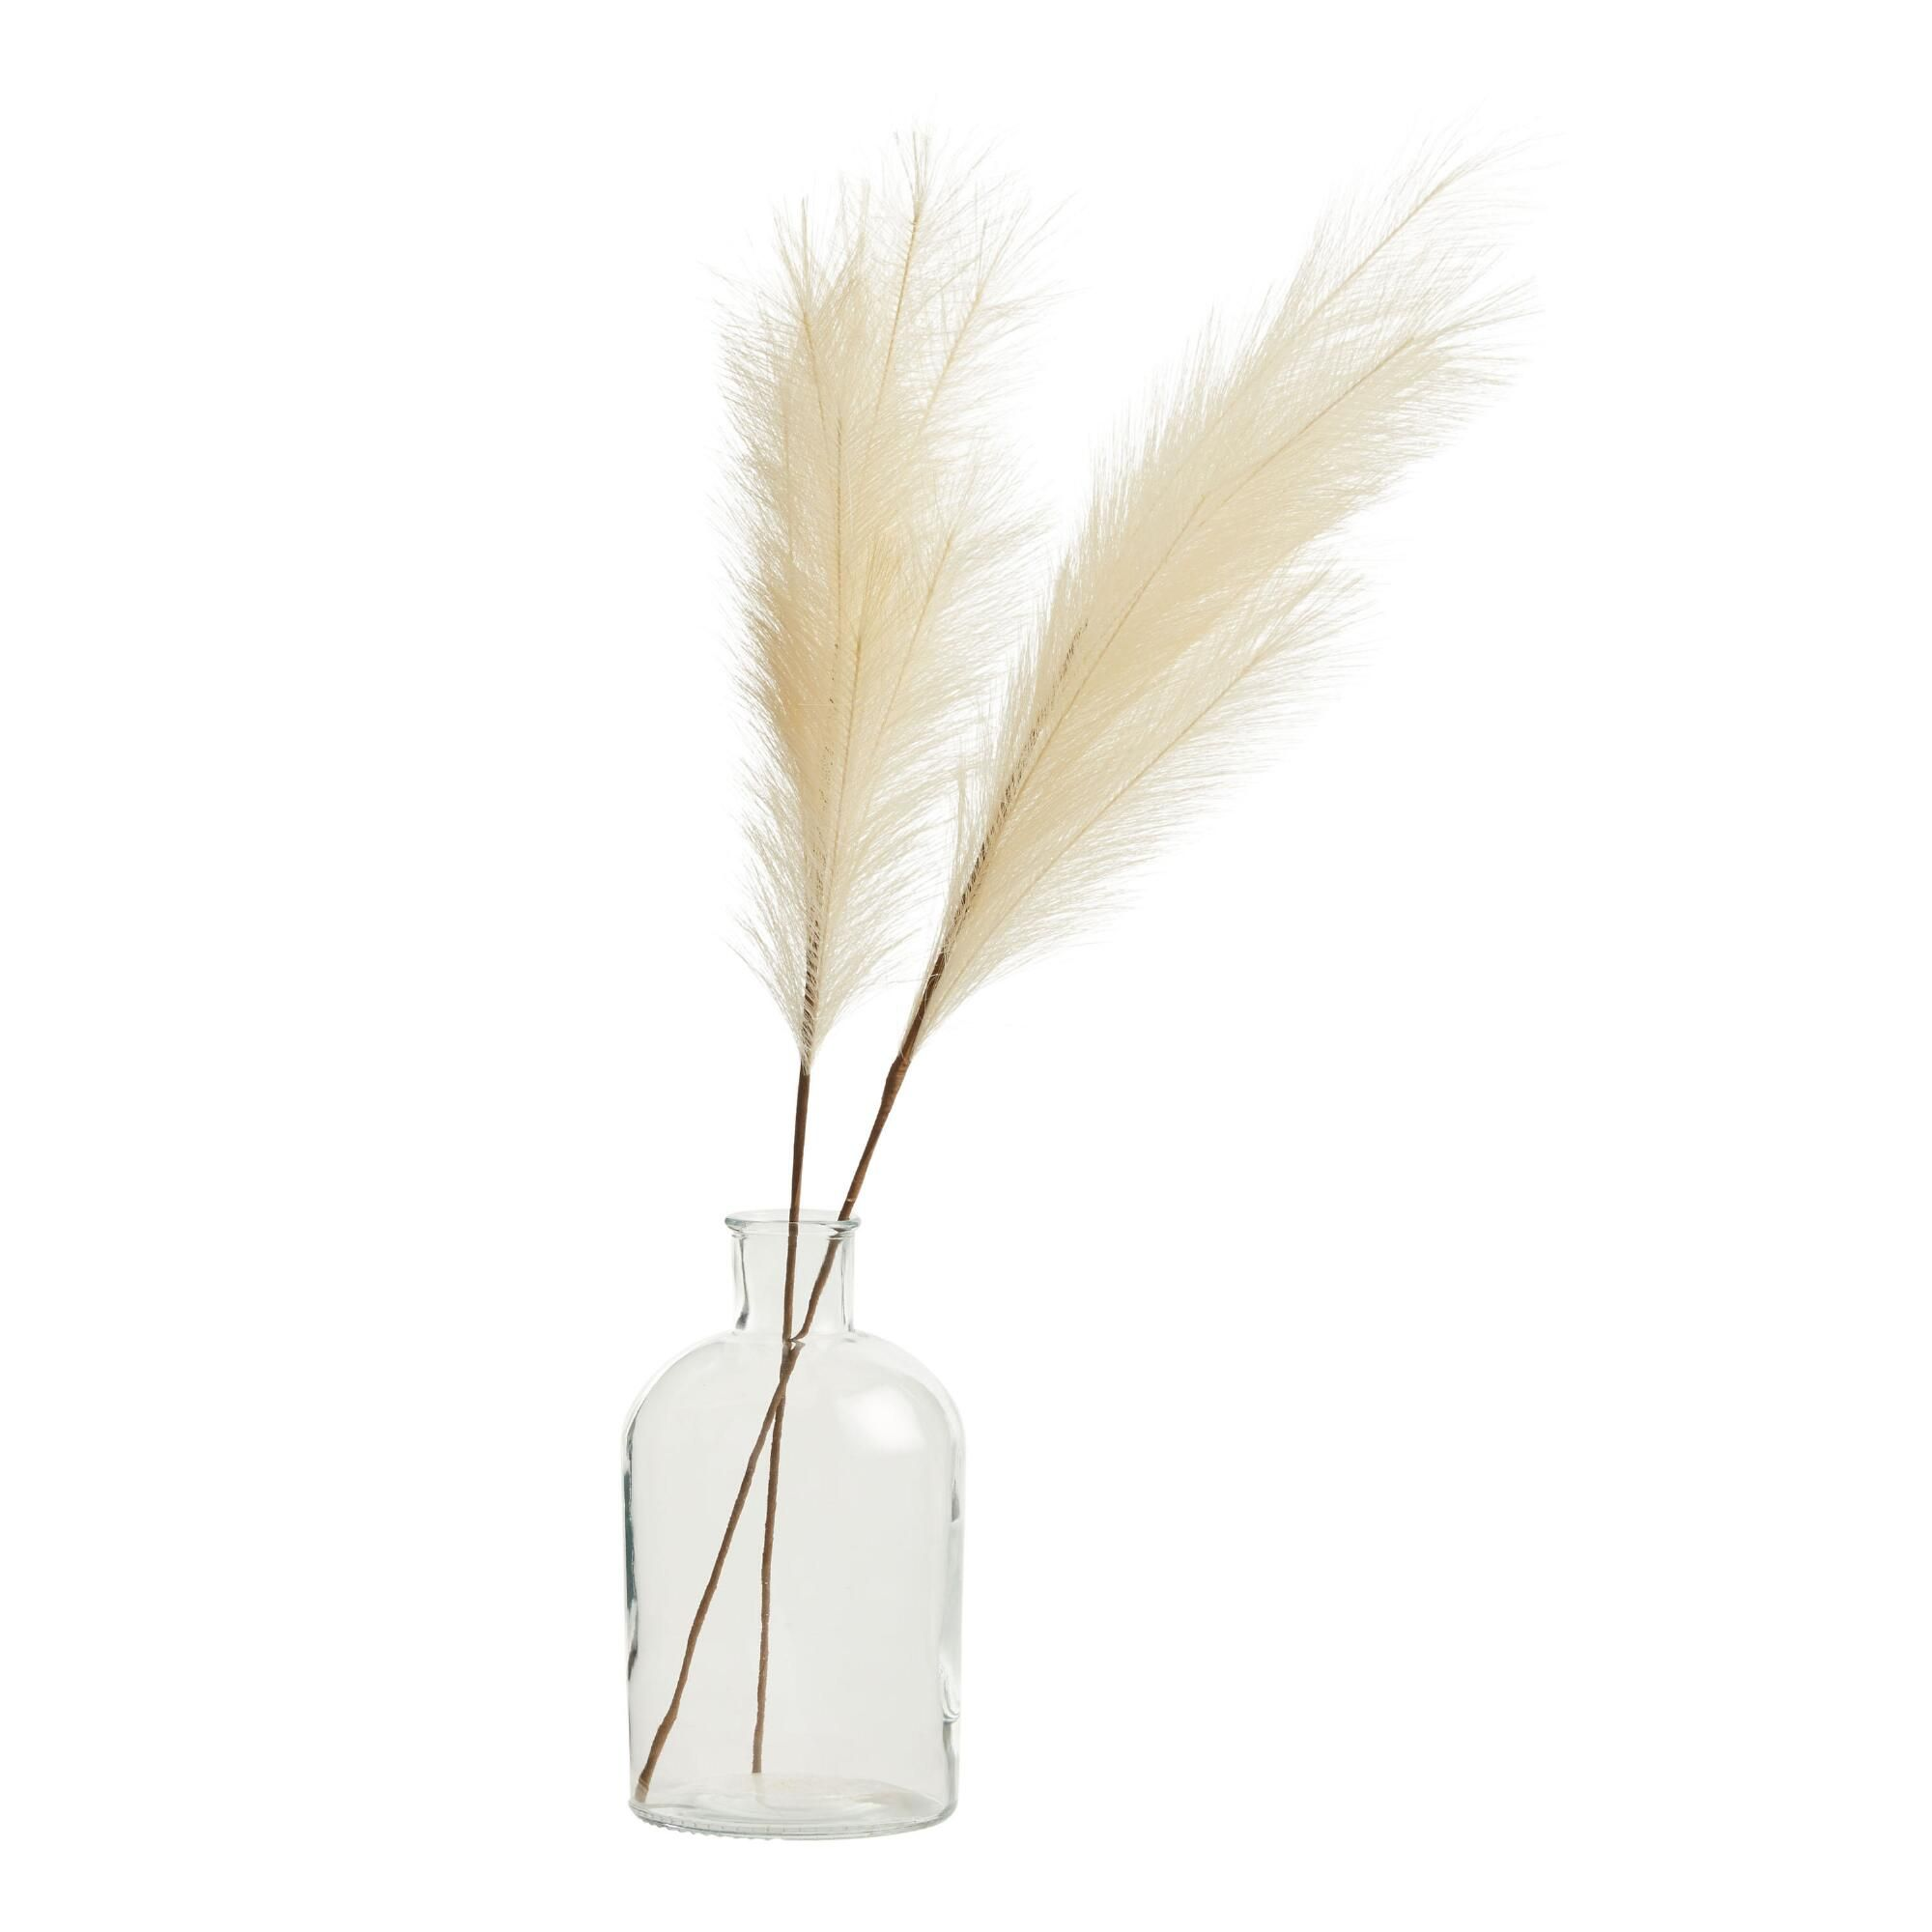 Faux Pampas Grass Stem V1 In 2020 Cost Plus World Market Pampas Grass Pampas Grass Decor